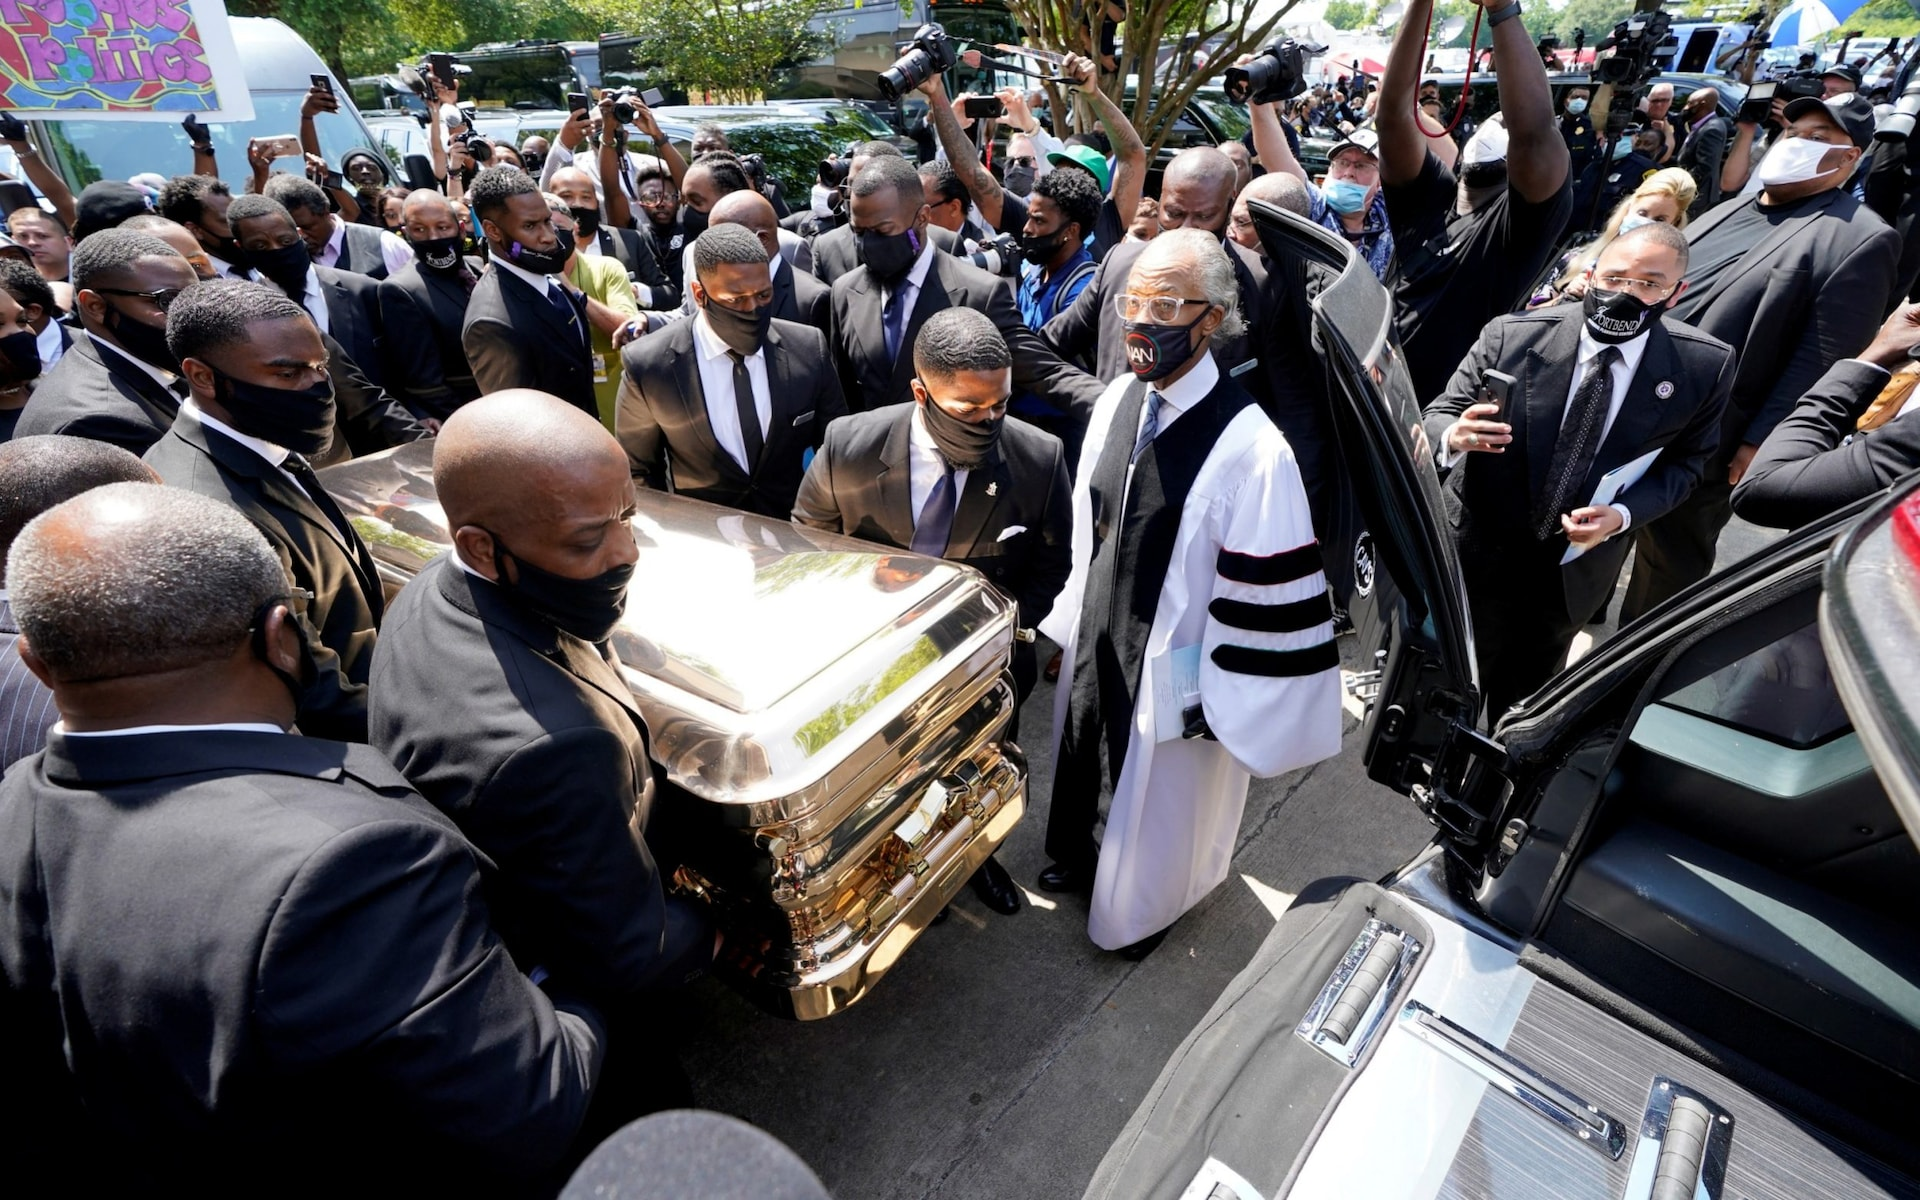 Experts say George Floyd's funeral turned into a pre-election campaign